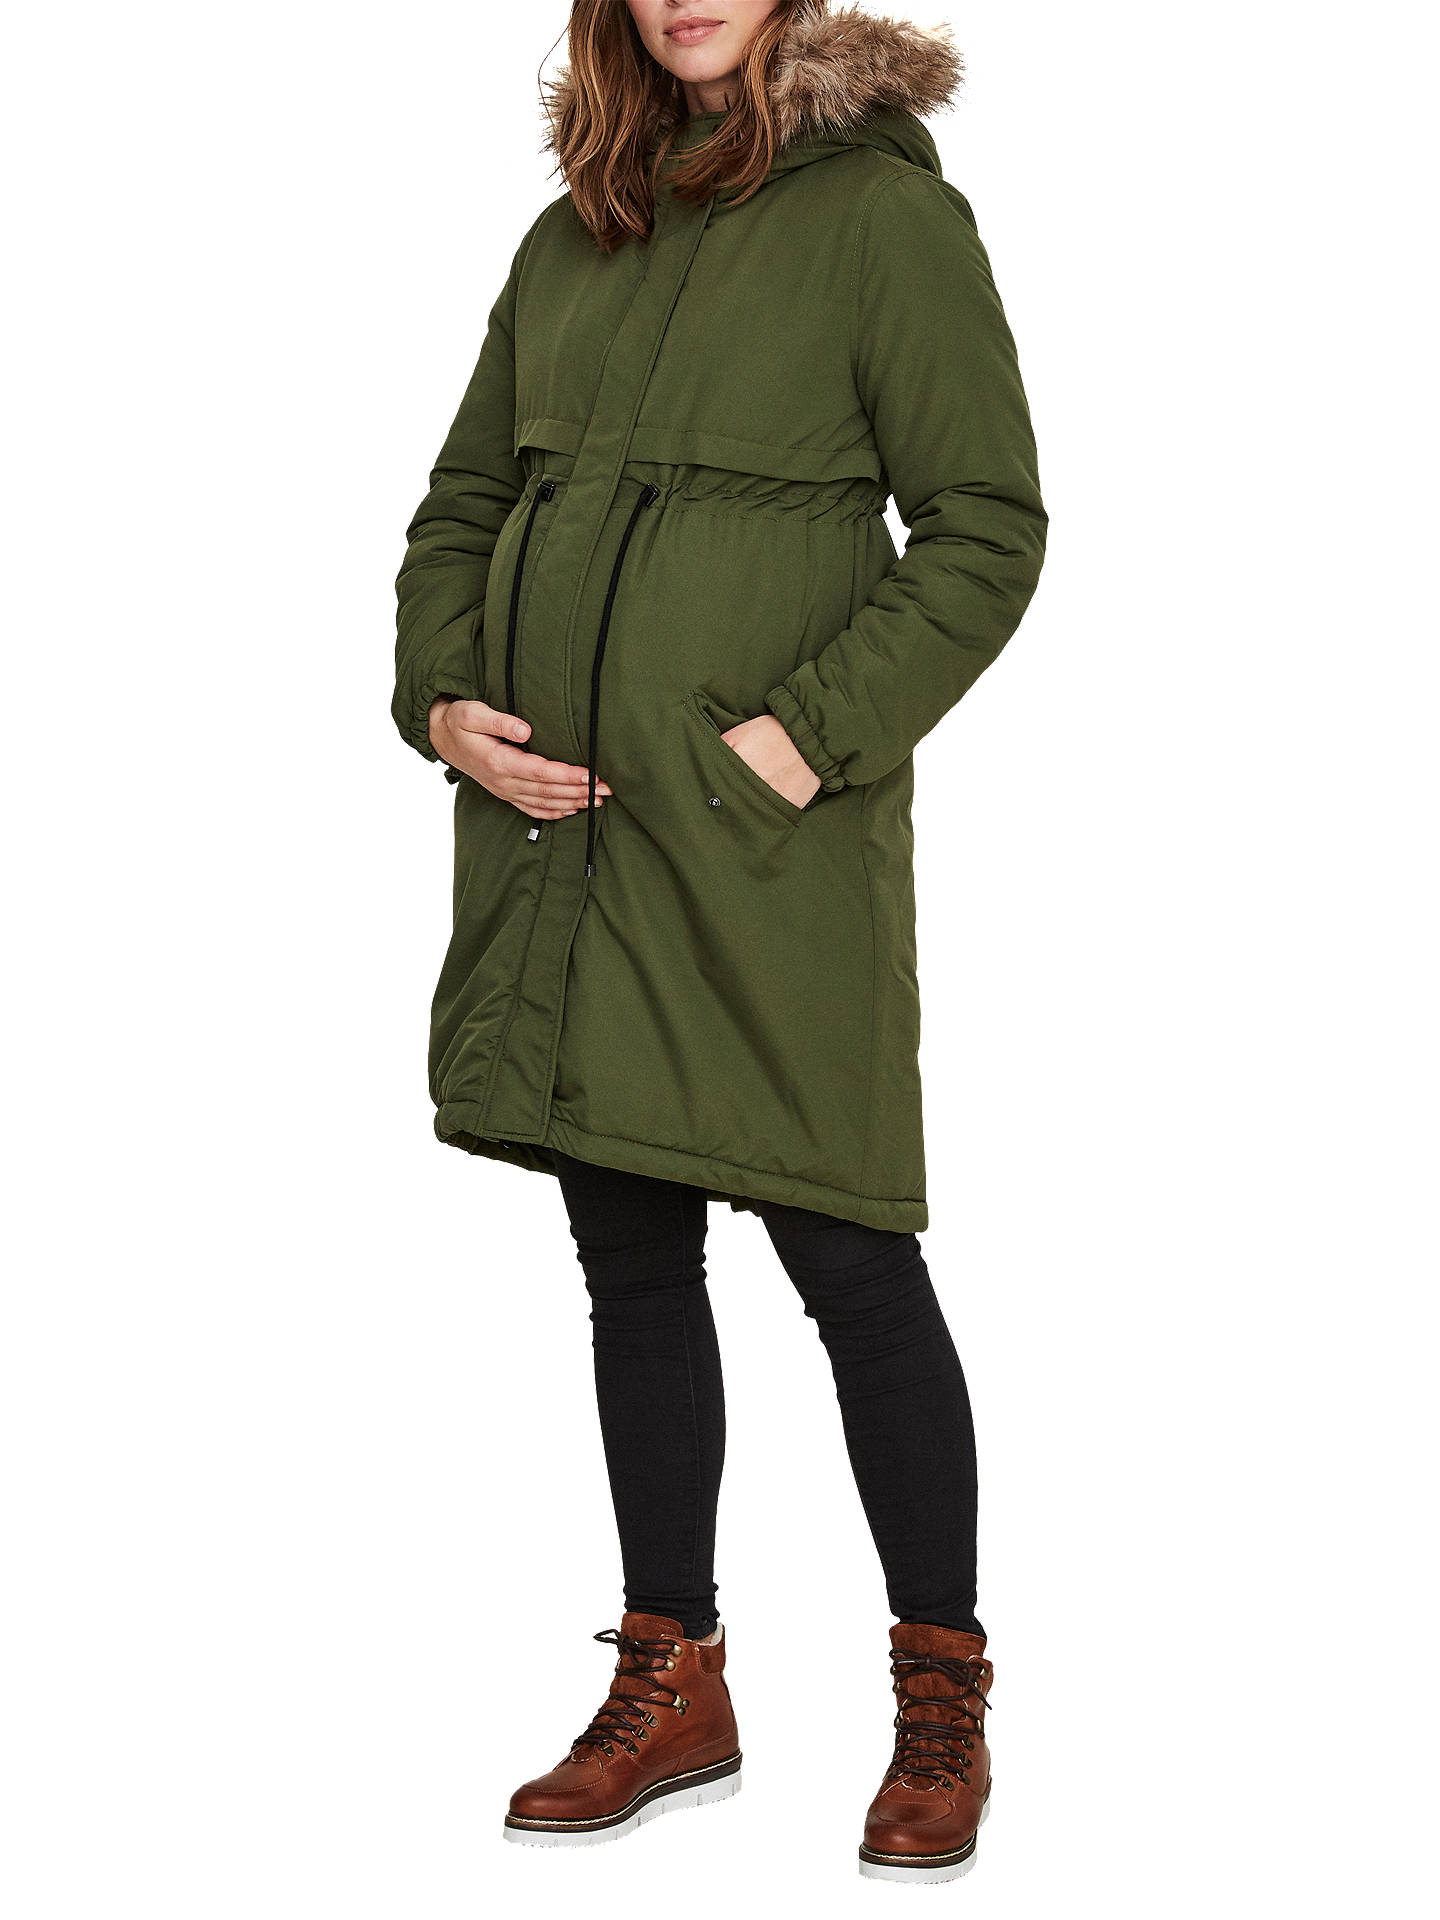 bae030fc8 Buy Mamalicious Padded Parka Maternity Coat